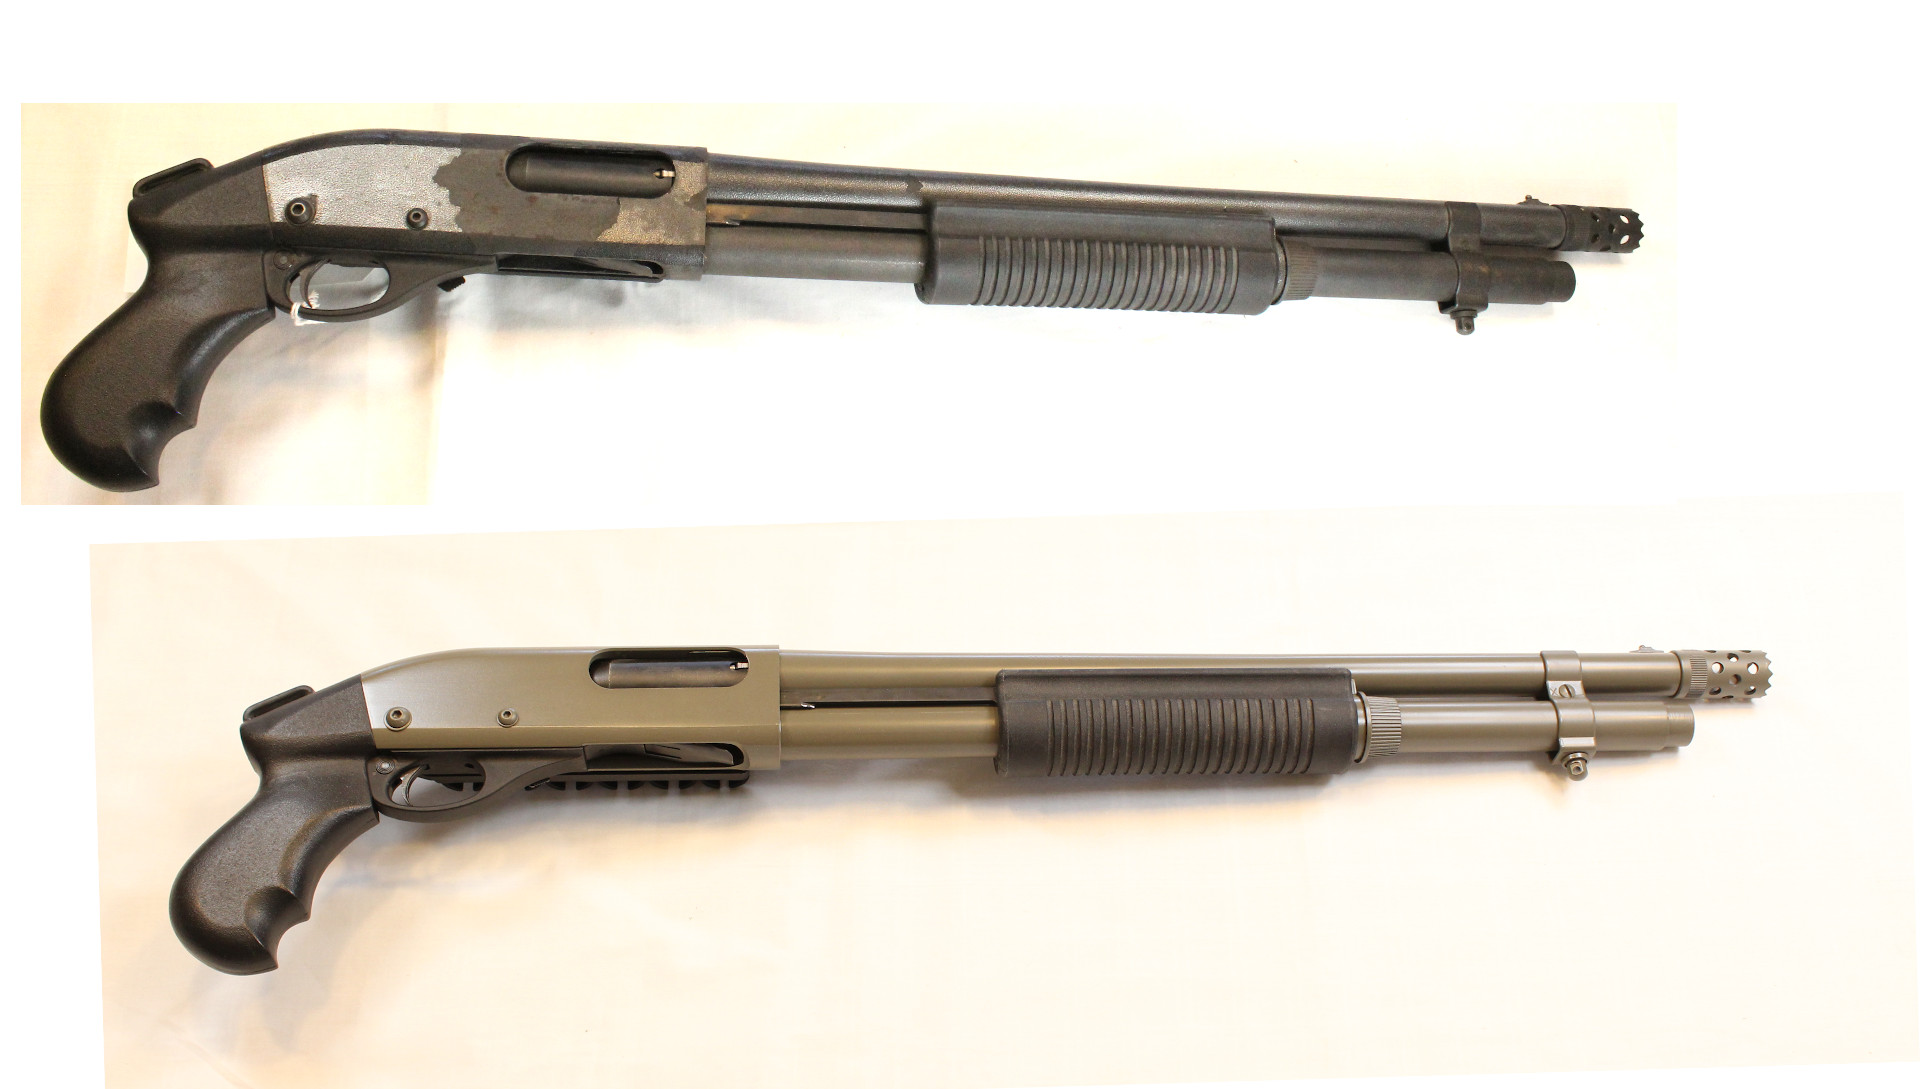 Remington 870 - Before and After